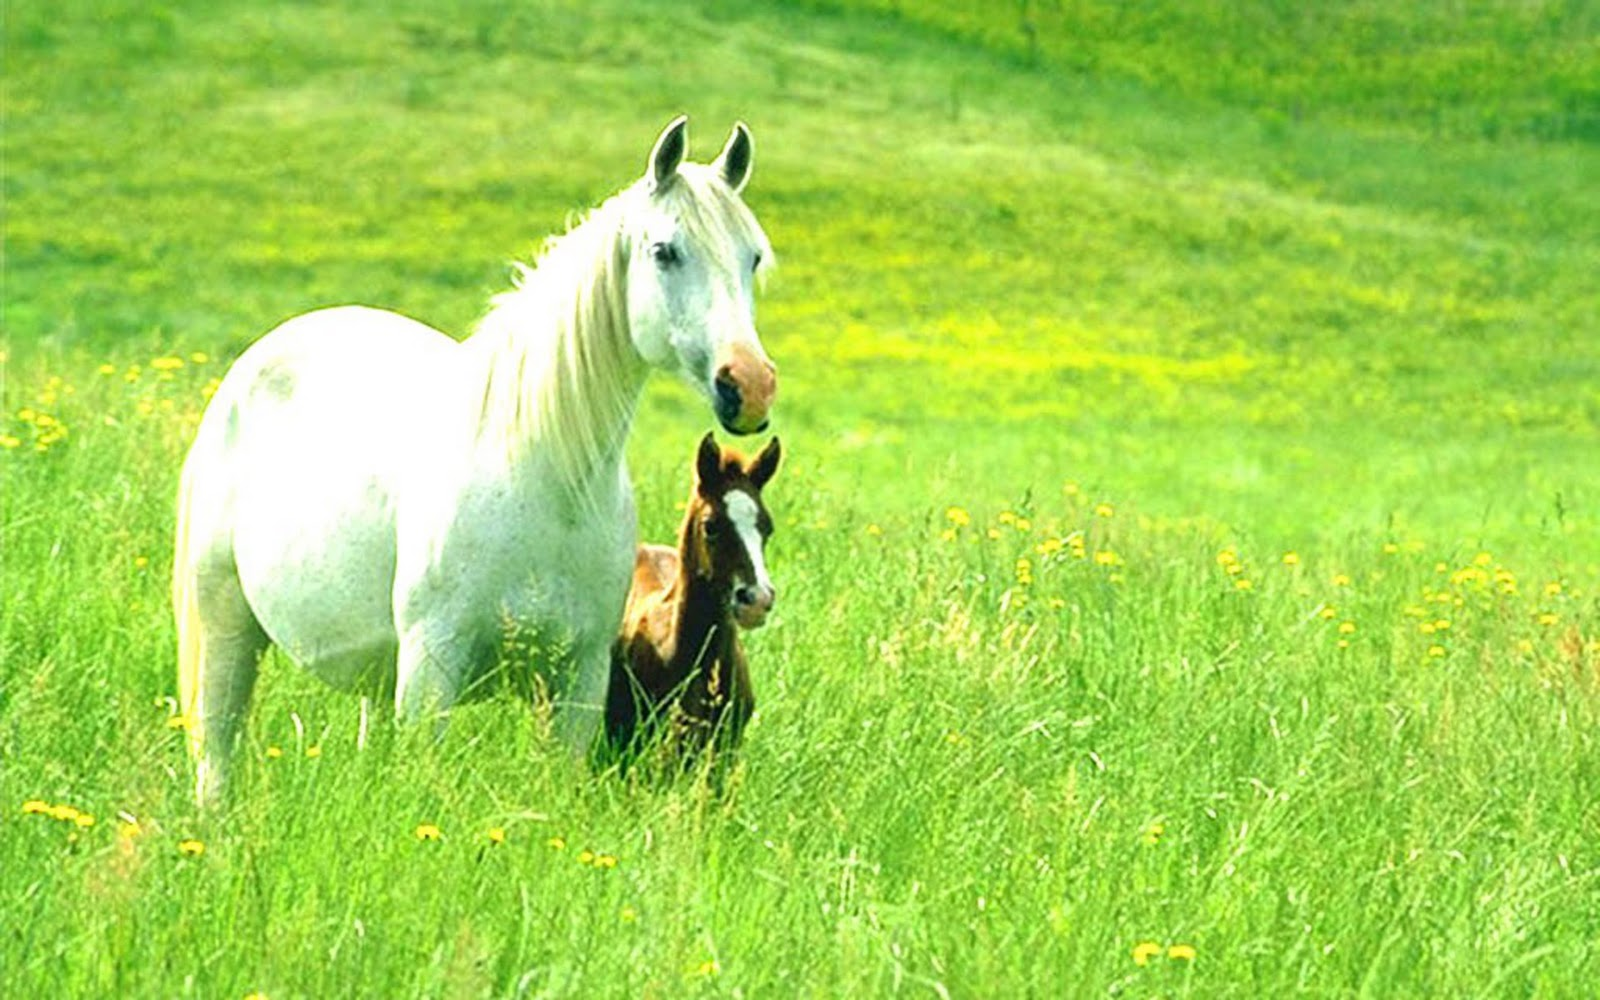 Must see   Wallpaper Horse Scenery - Animals+Wallpapers+About+Horses+and+Ponies  Photograph_783975.jpg